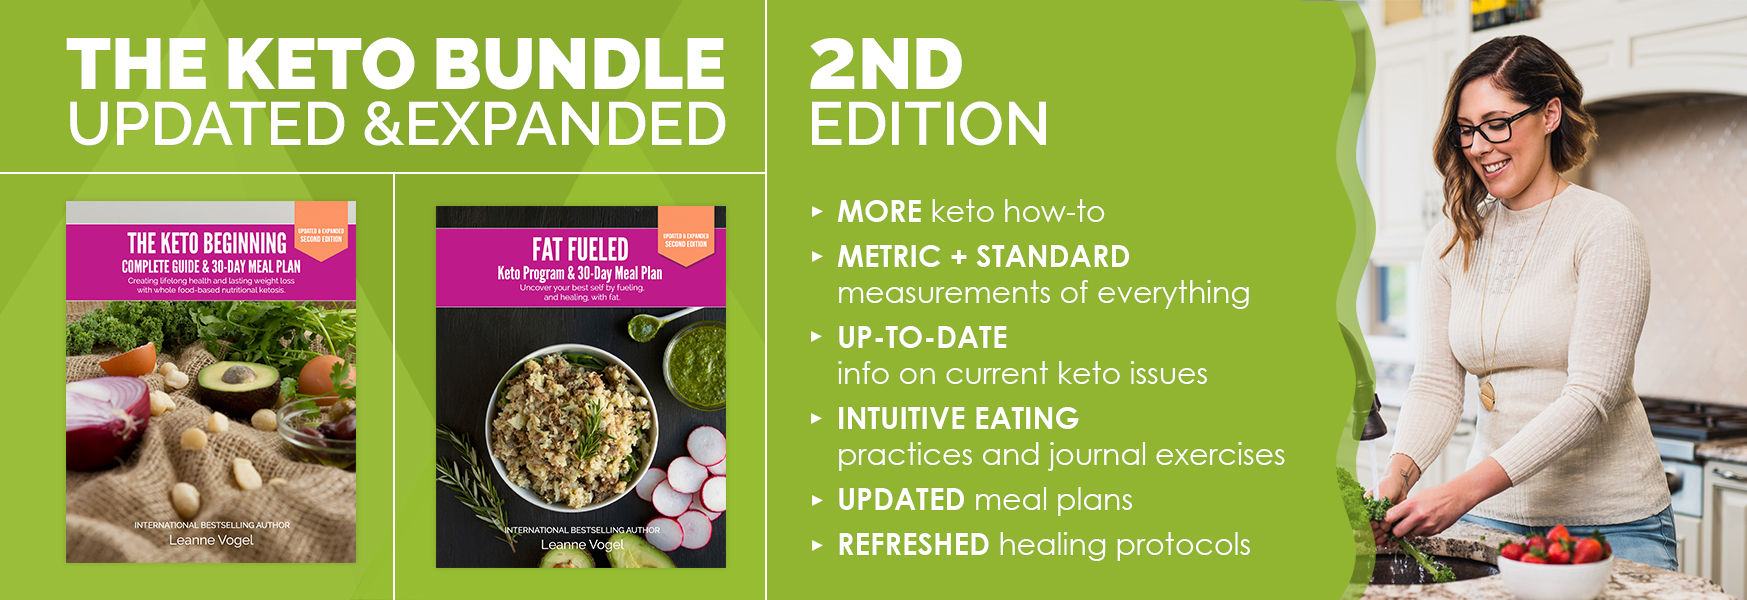 The Keto Bundle